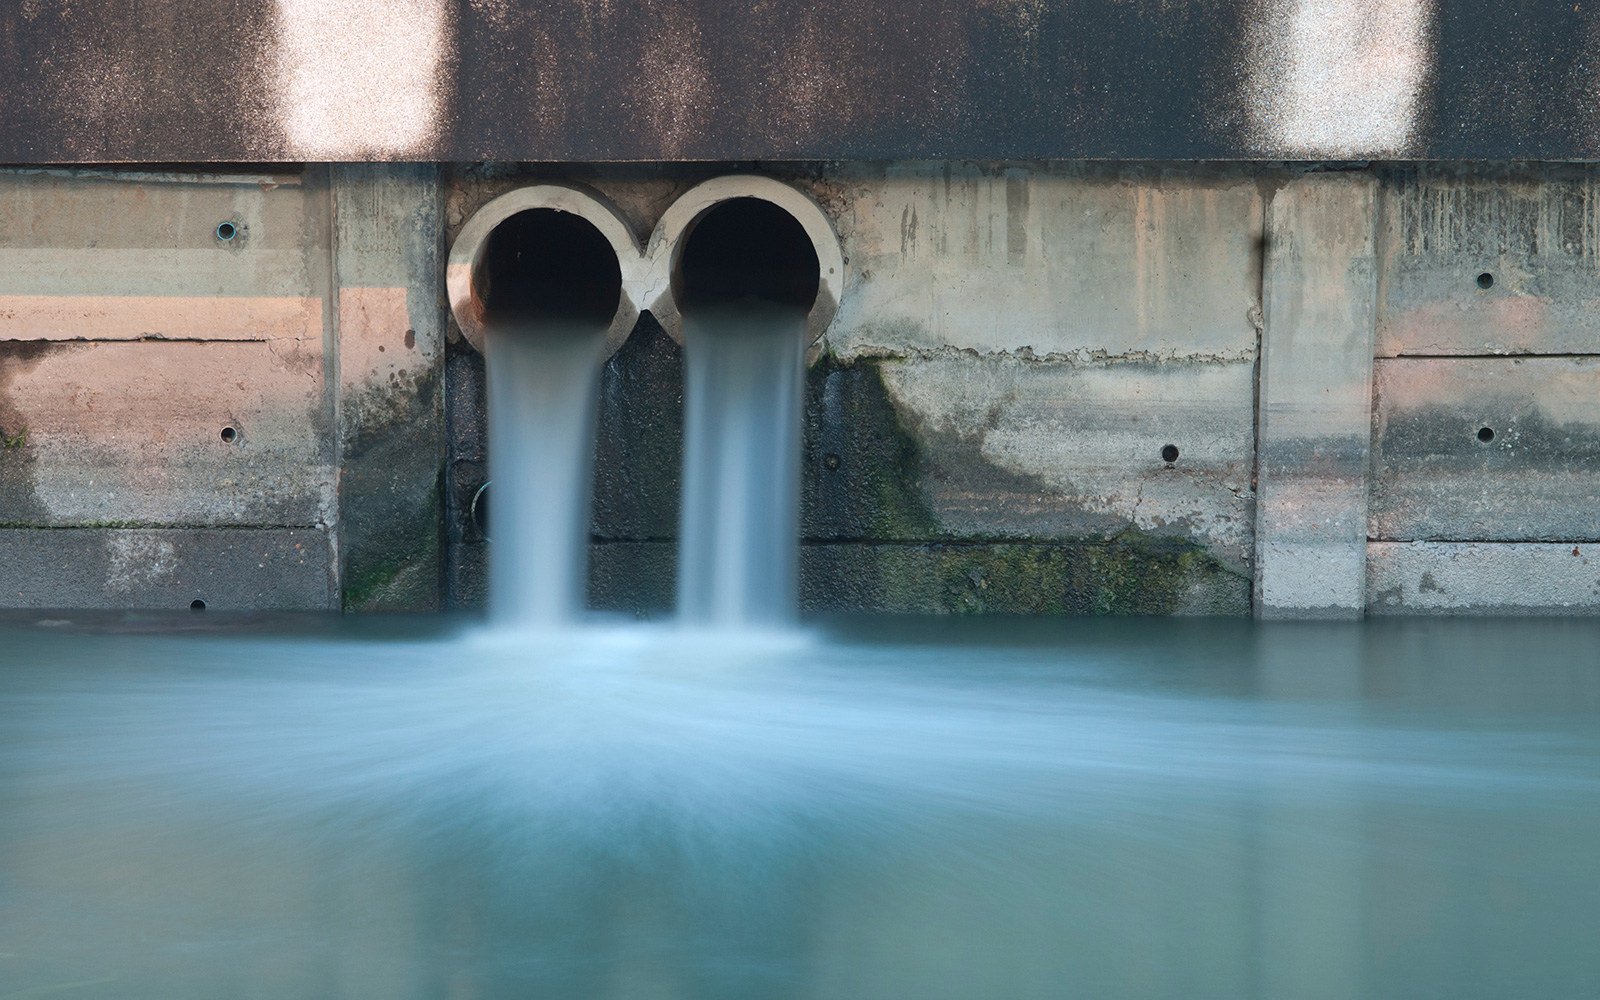 Effluent flowing from two discharge pipes into a water body